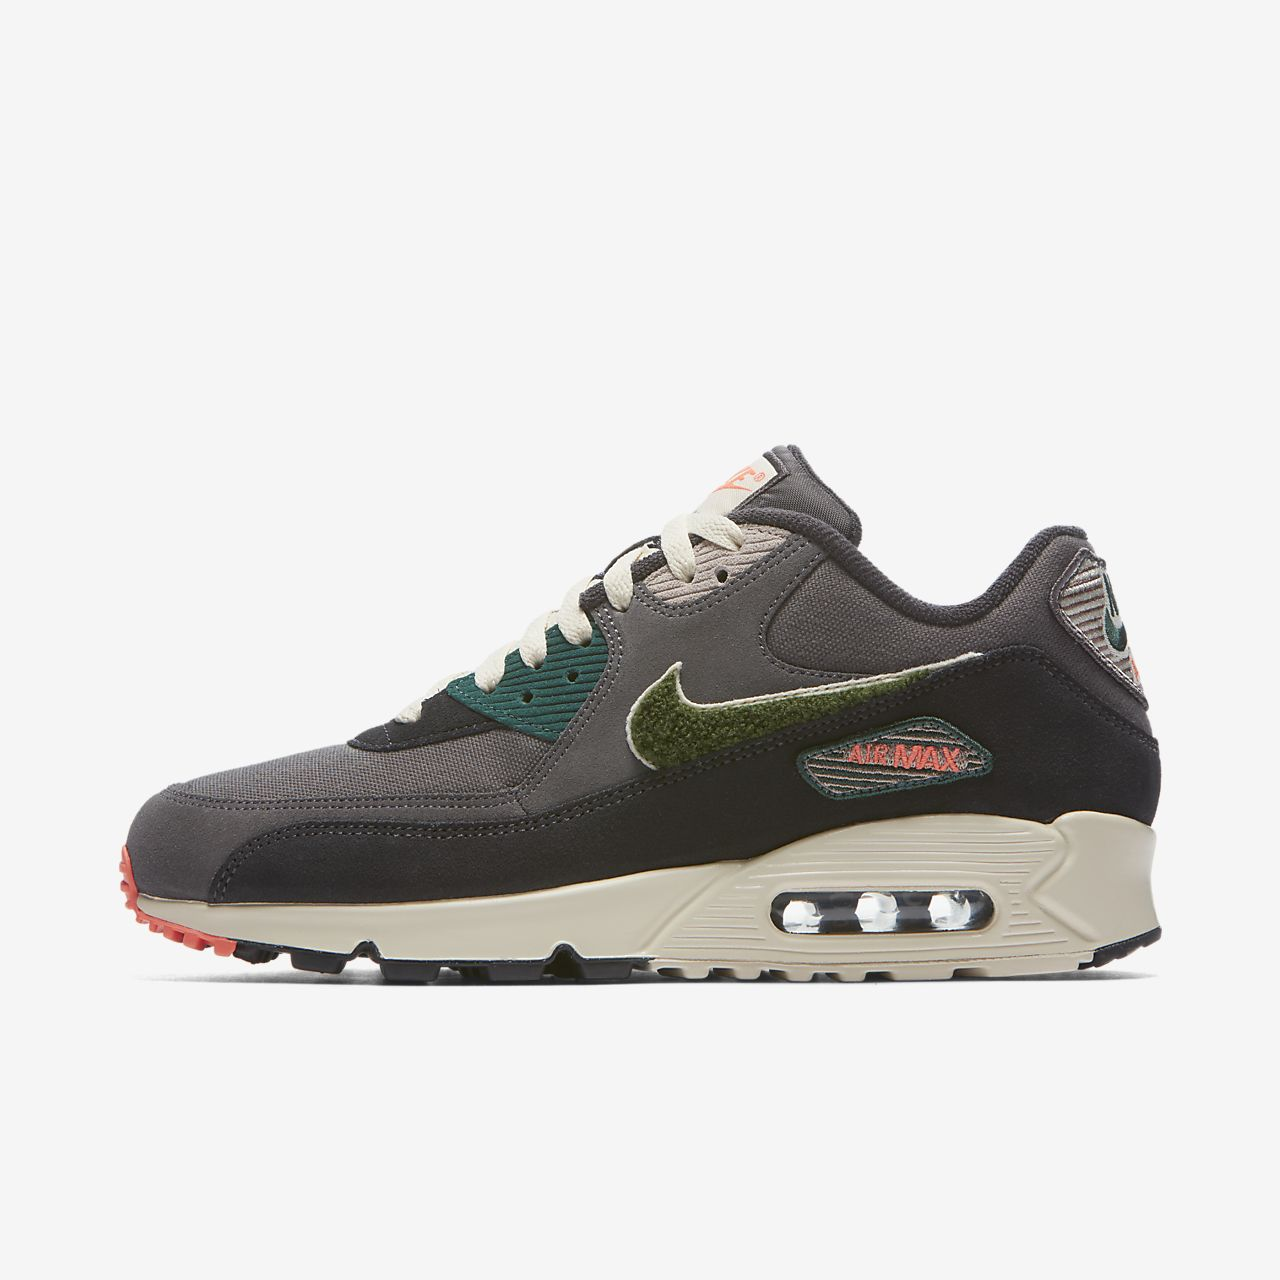 sports shoes 52d39 aa8a4 Nike Air Max 90 Premium SE